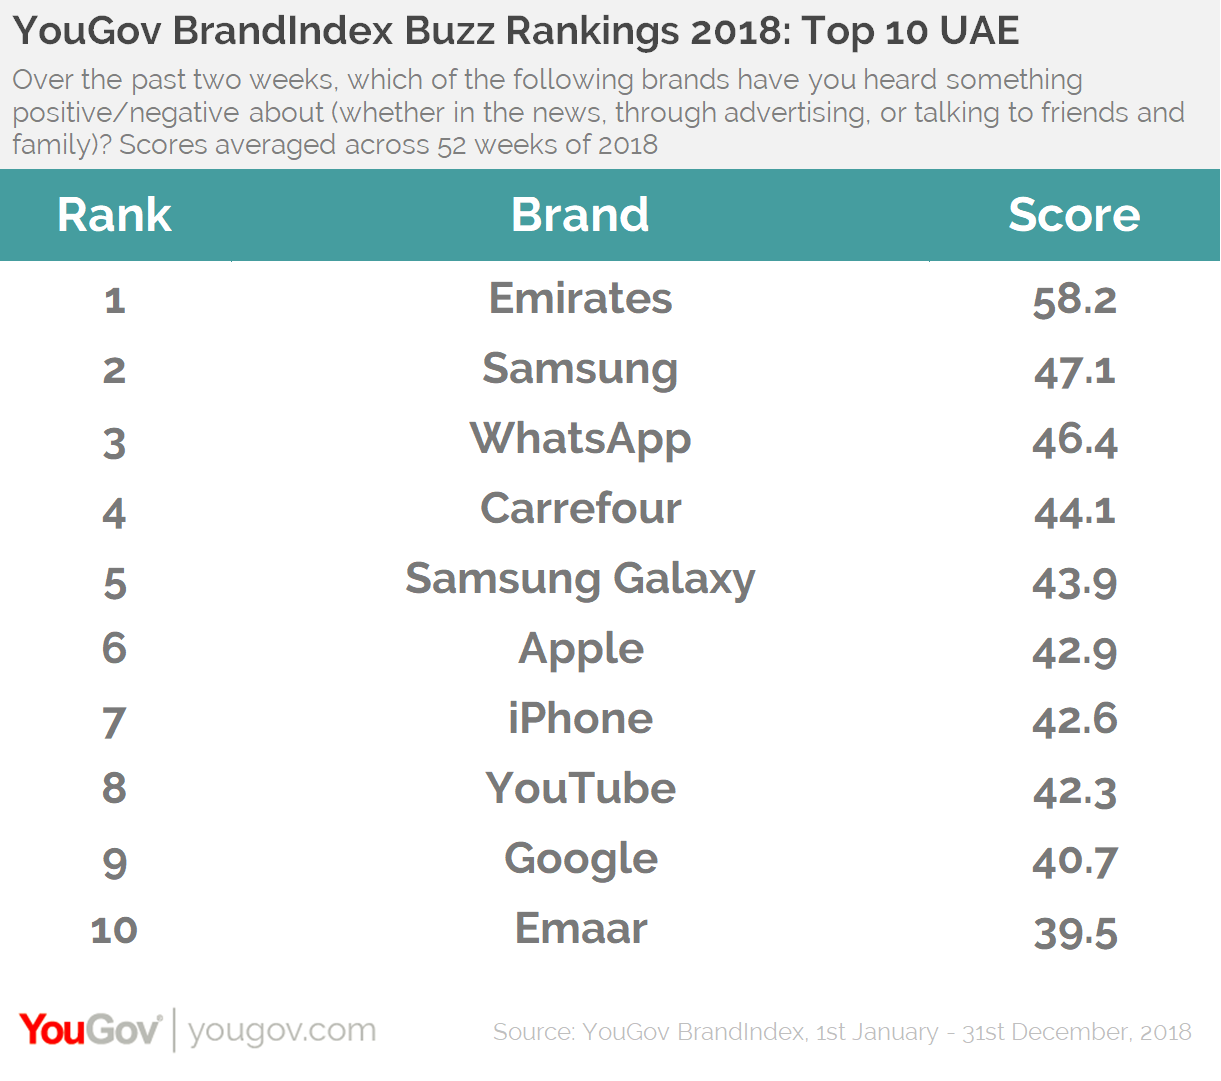 YouGov BrandIndex Buzz Rankings 2018: Top 10 UAE